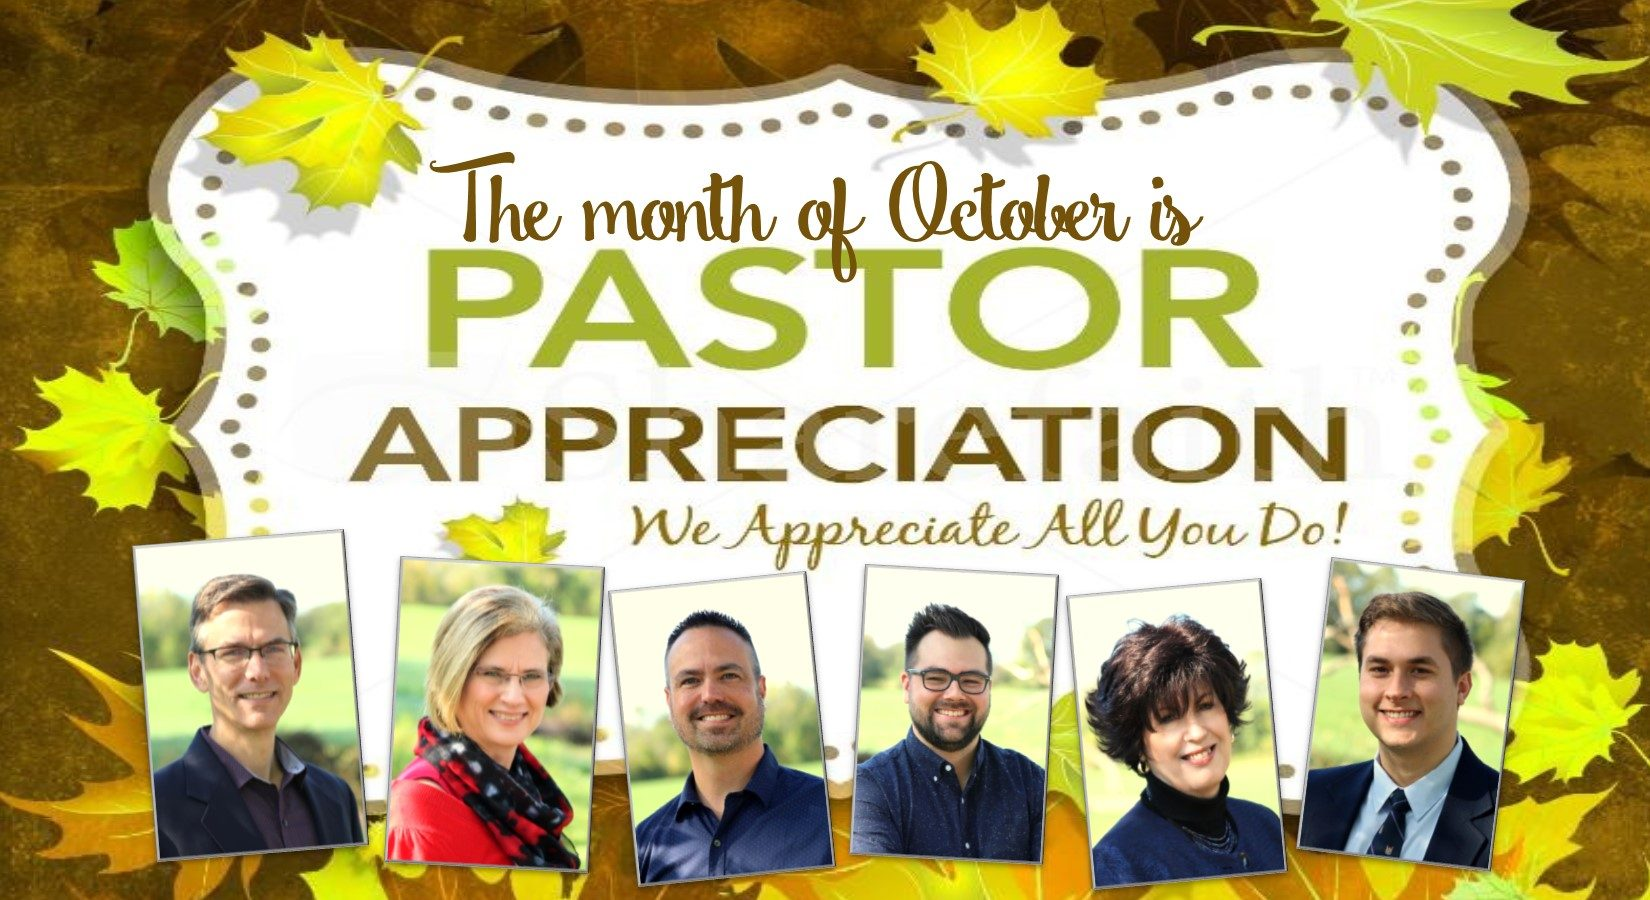 10-16-19 Pastor appreciation month